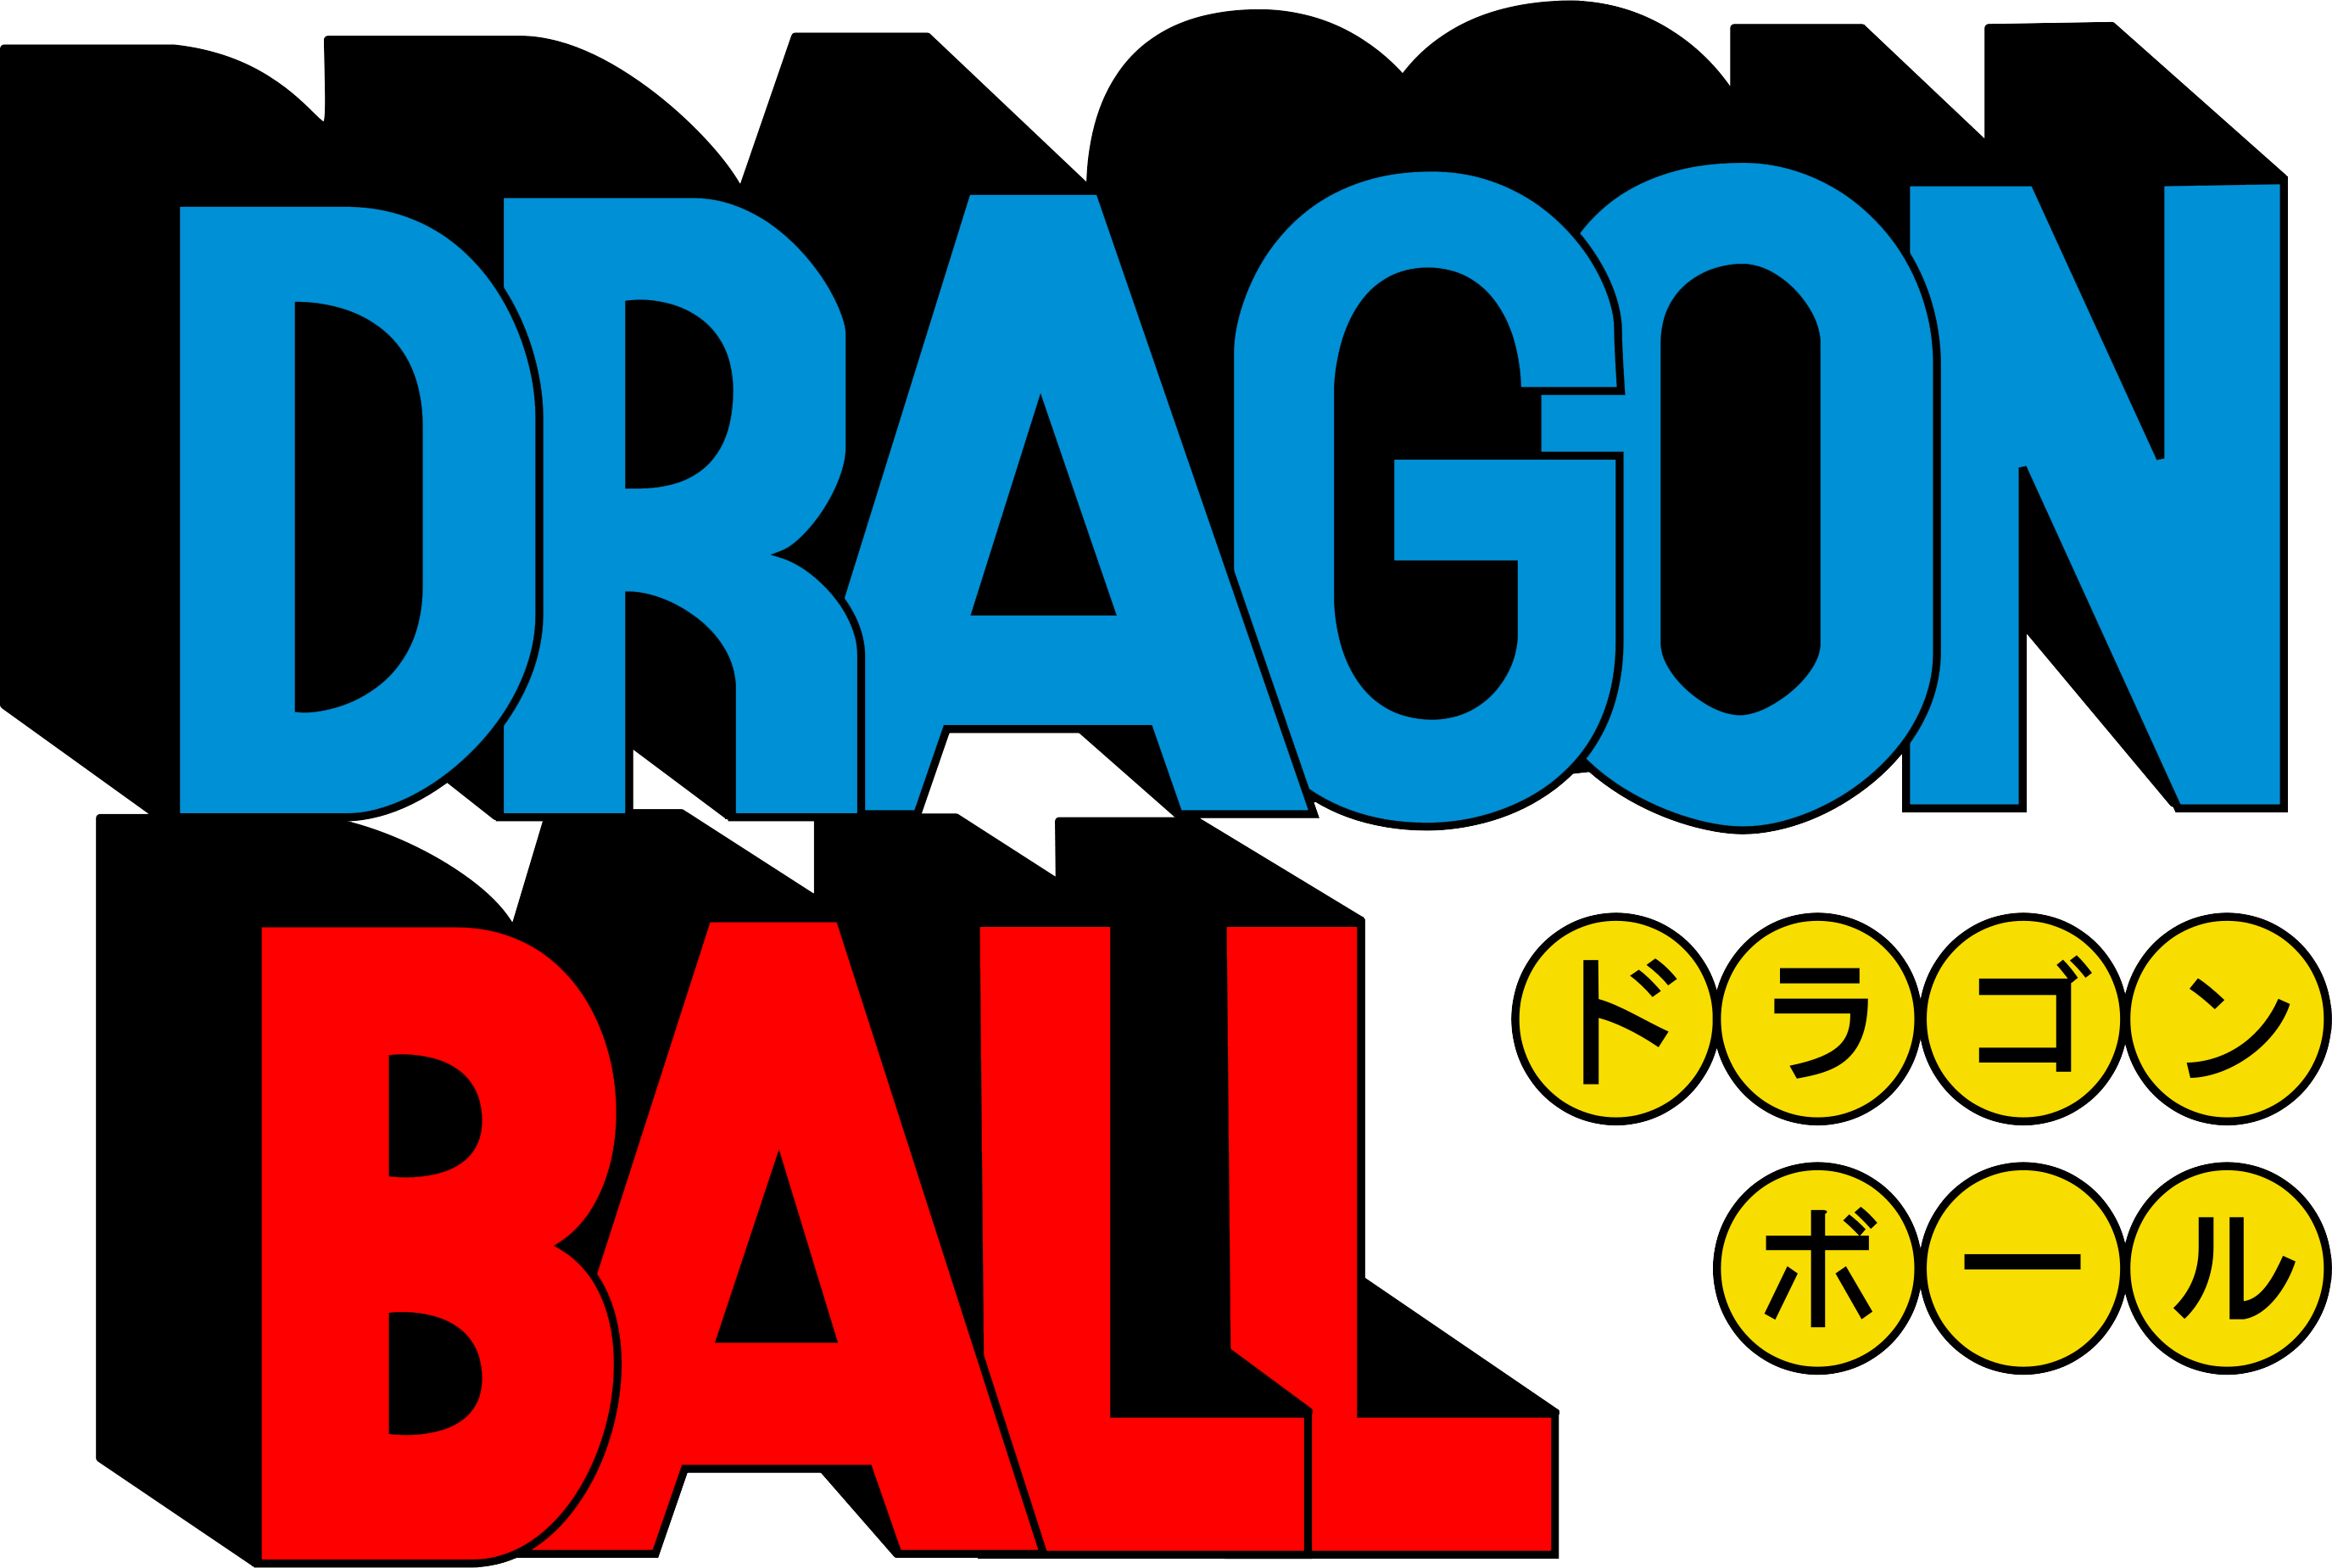 Dragon Ball anime logo - Dragon Ball anime